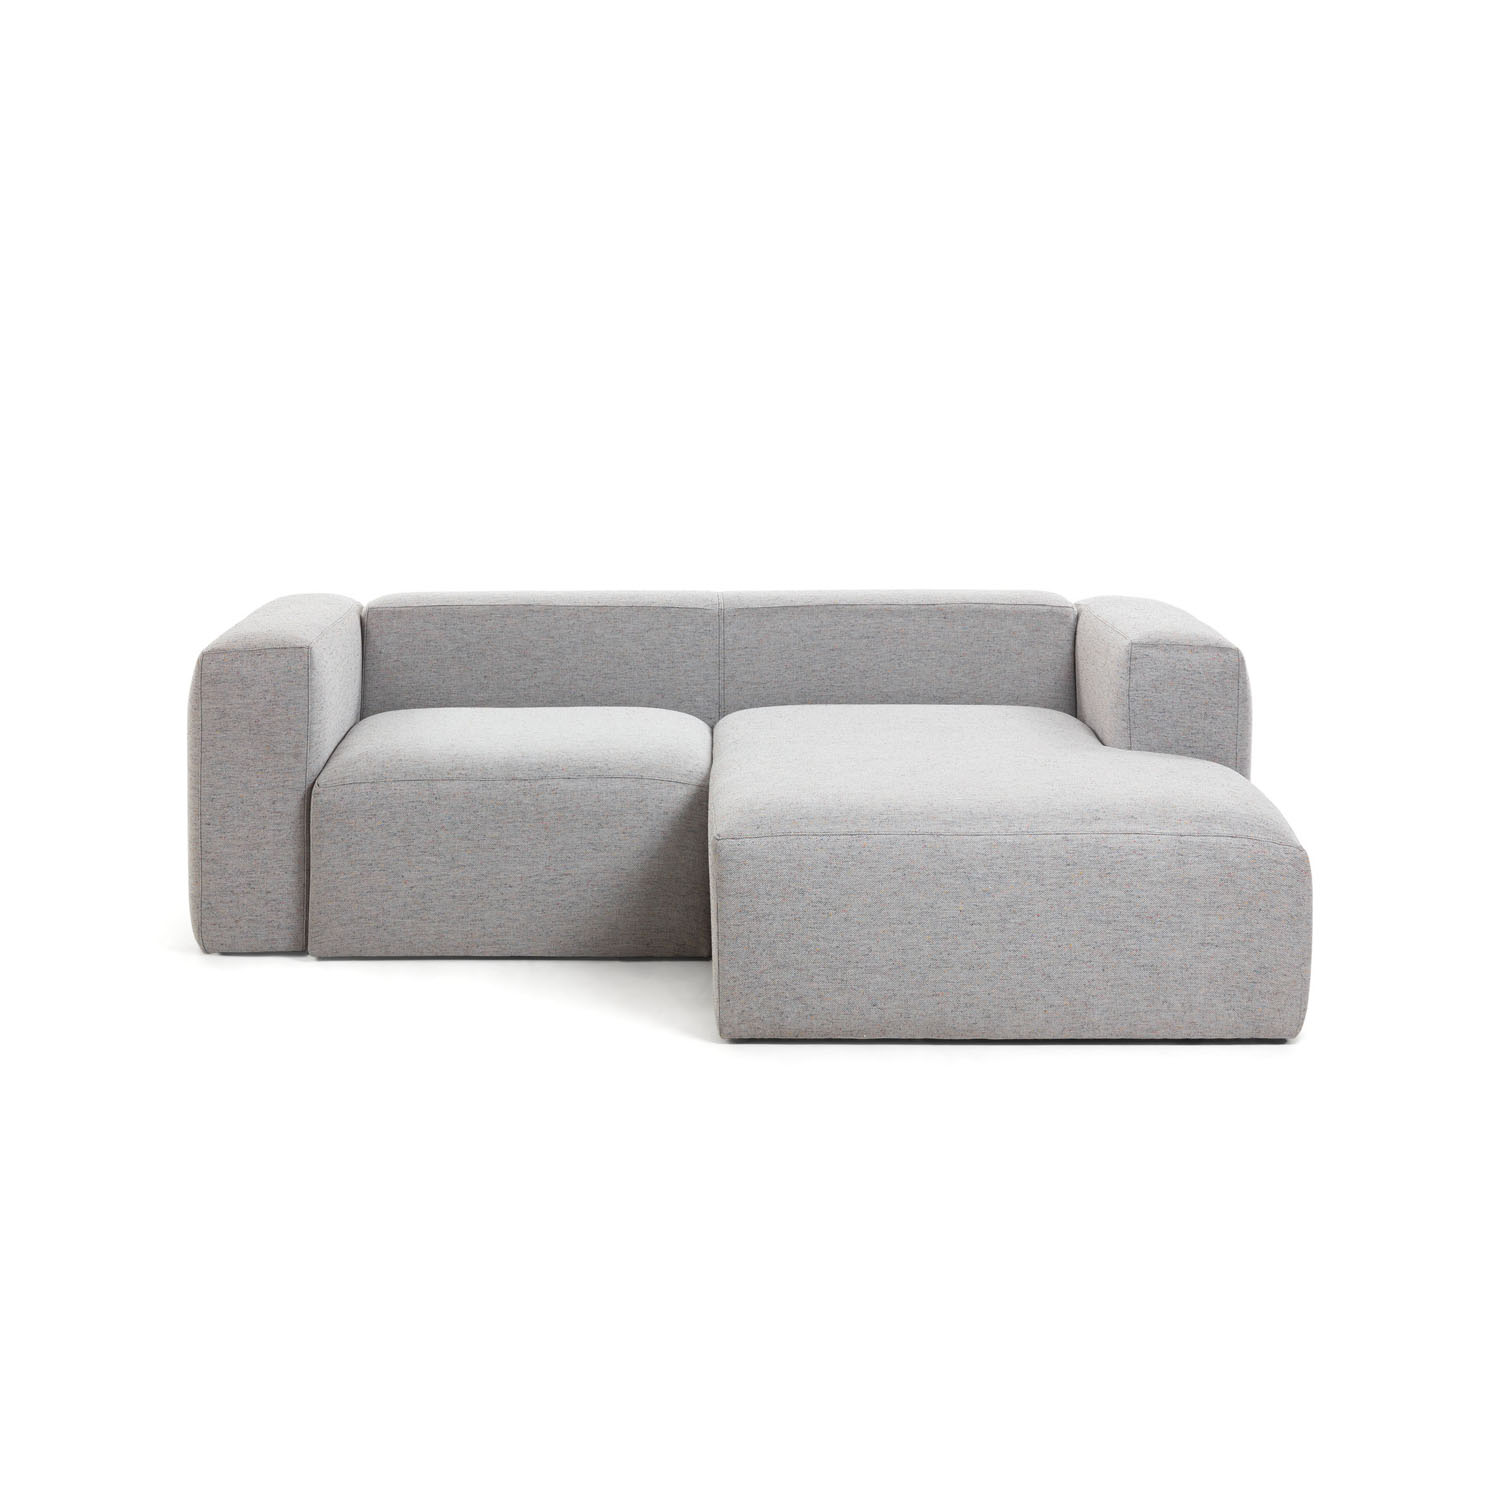 LAFORMA Blok 2 pers. sofa m. højre chaiselong - lysegrå stof